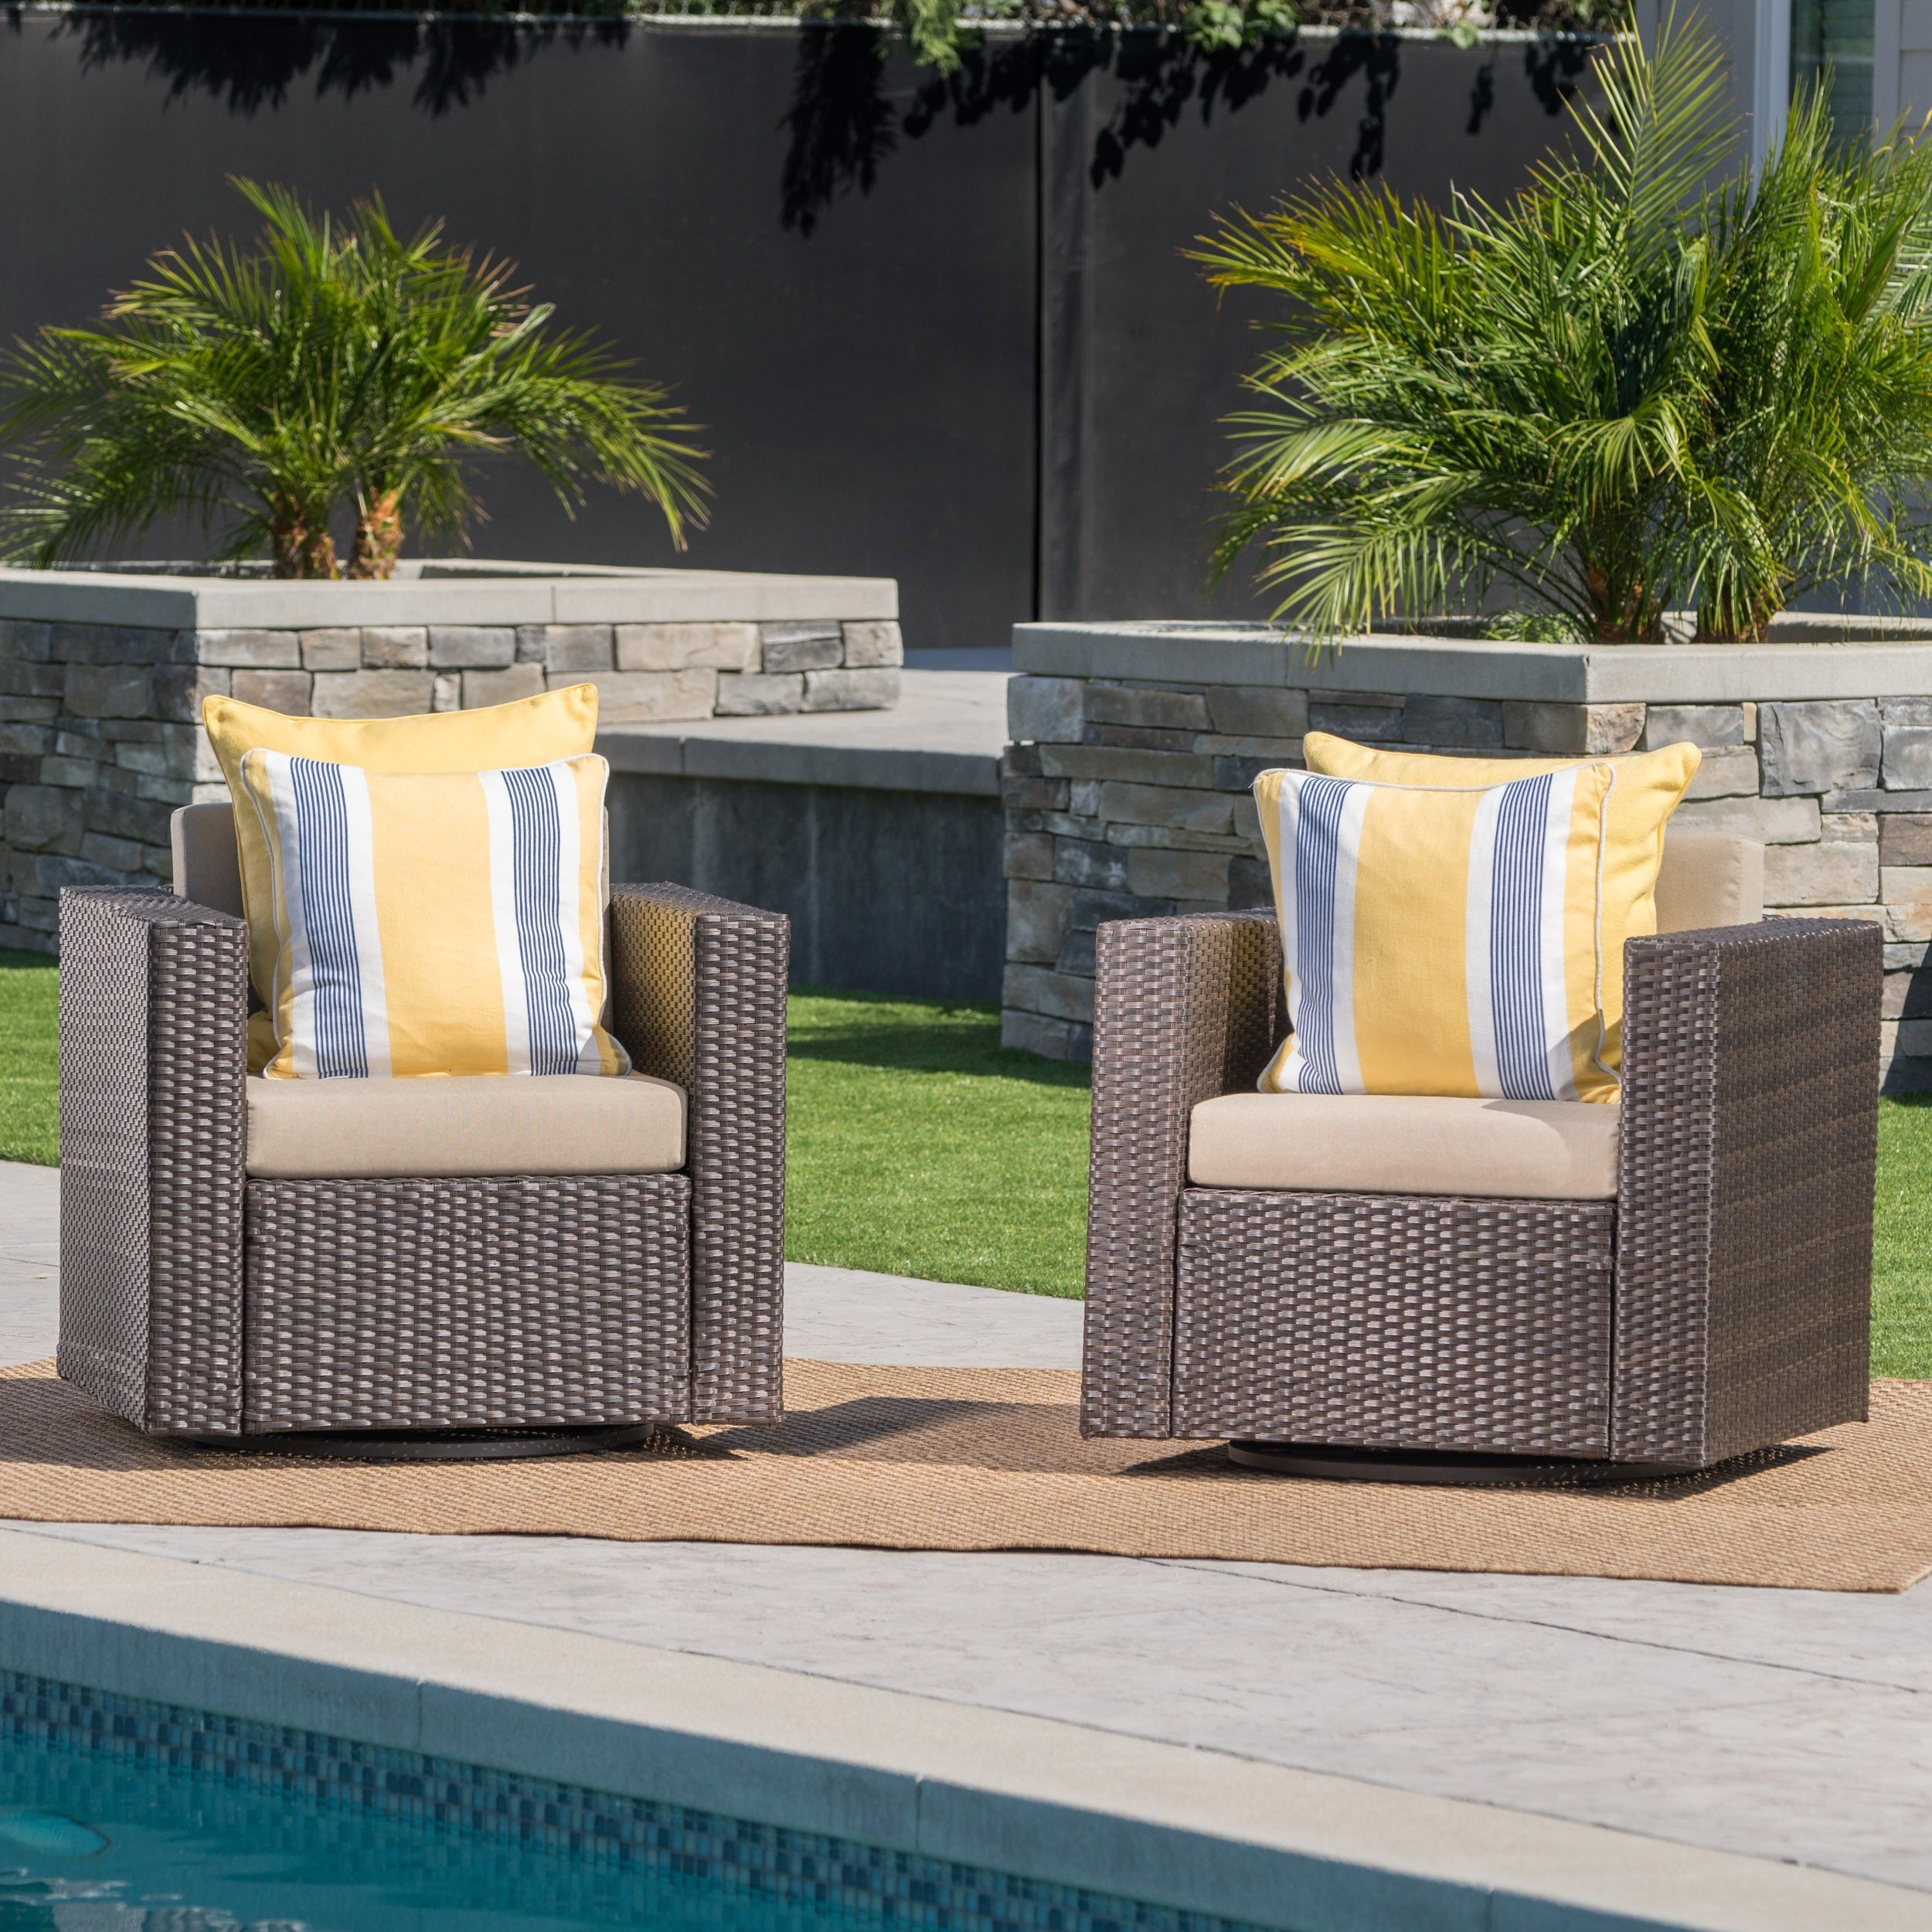 Puerta Outdoor Wicker Swivel Club Chair With Cushions (Set Of 2) By  Christopher Knight Home   Free Shipping Today   Overstock   23605863